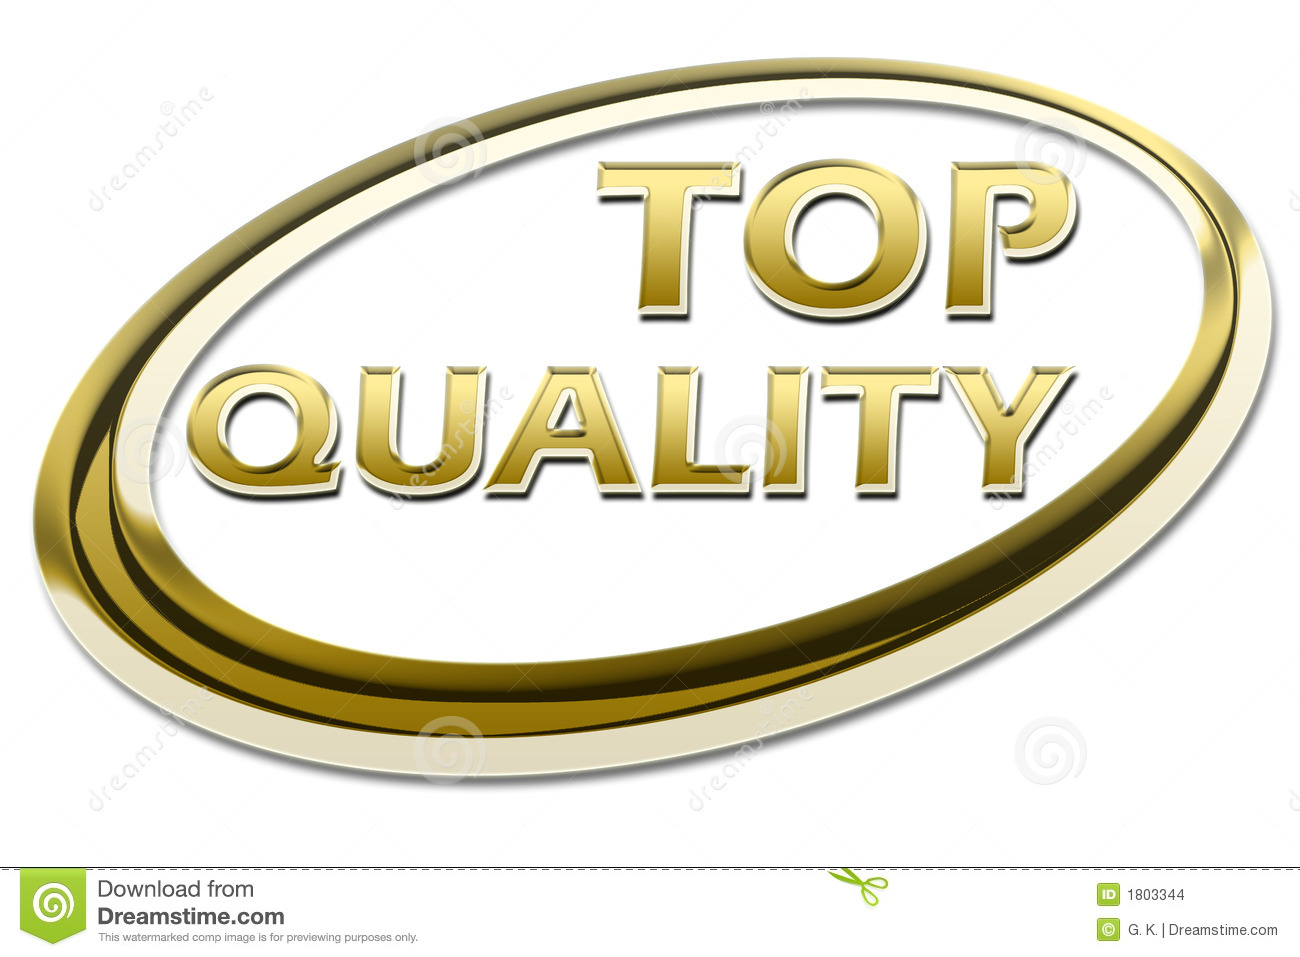 TOP Quality Symbol Stock Illustration. Image Of Pure